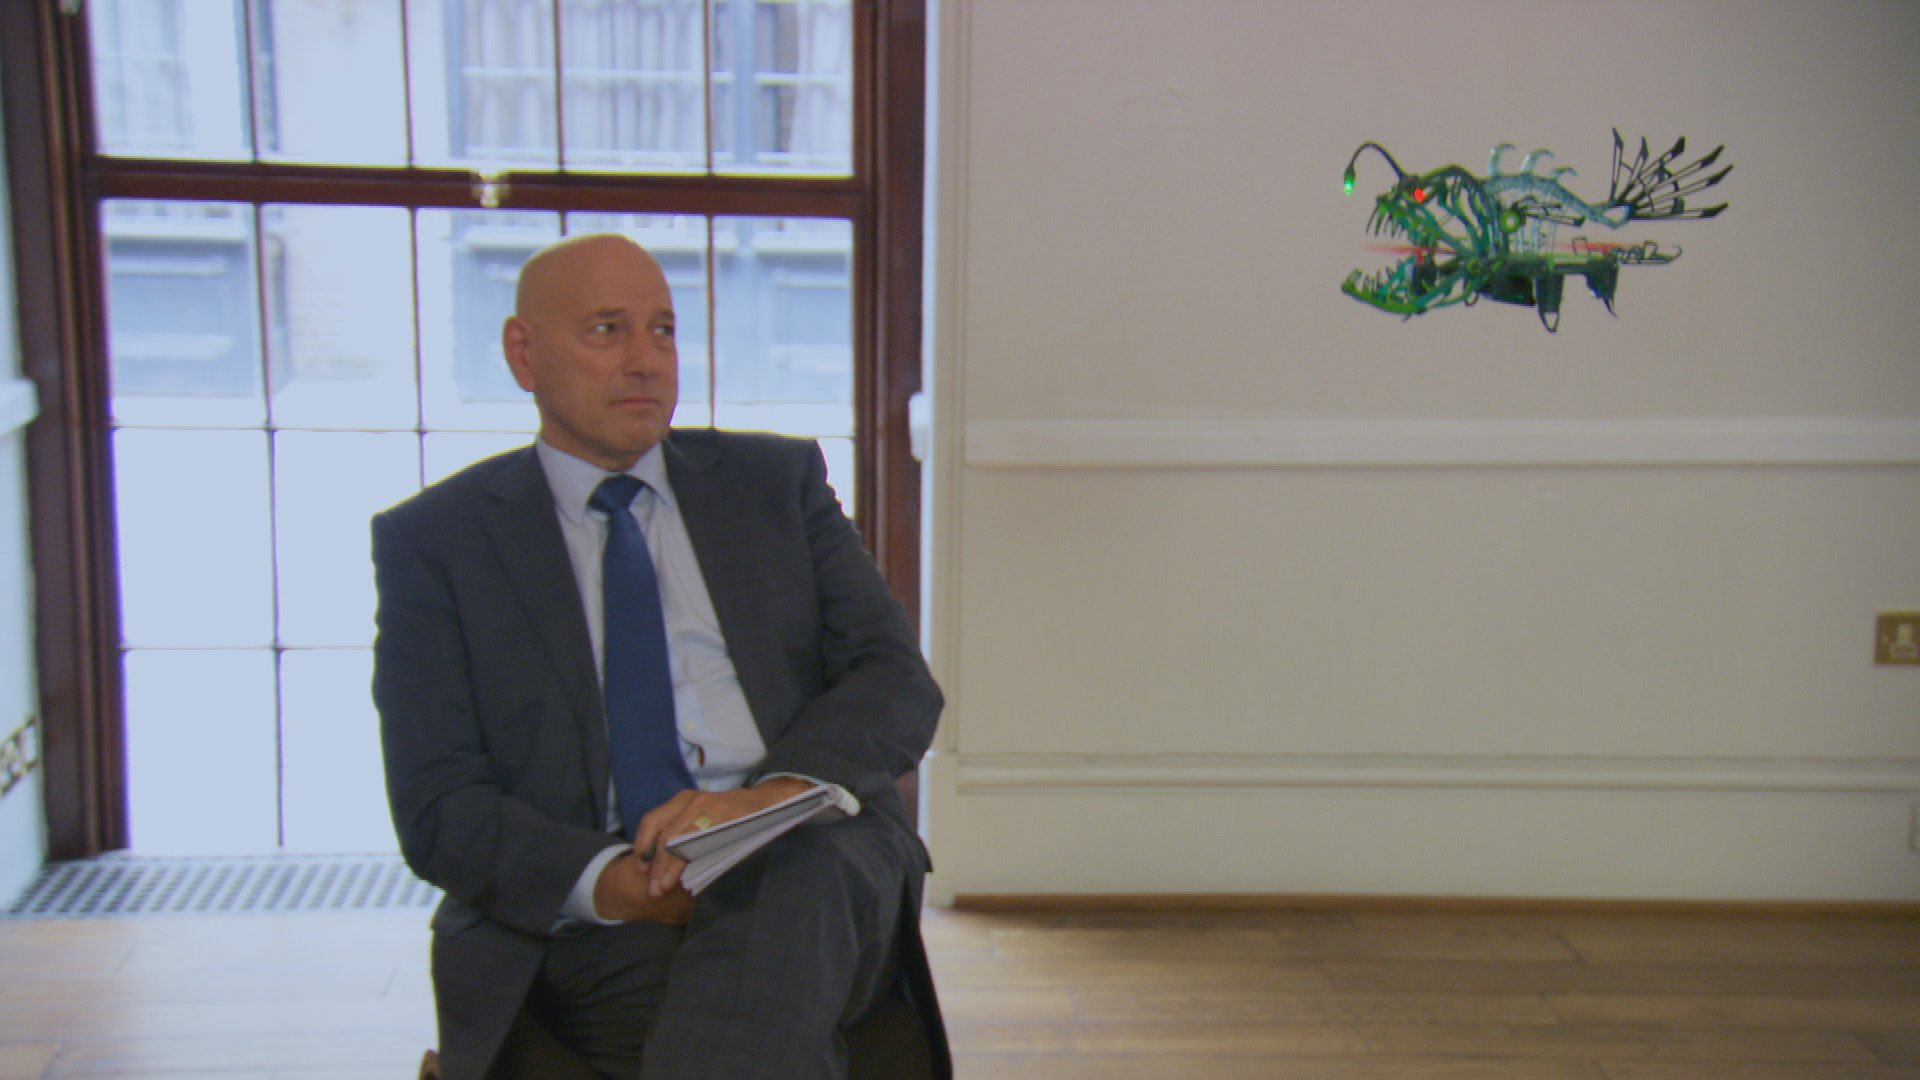 Tonight on The Apprentice at 9pm on BBC1, the episode is all about robots. This one looks exactly like Claude. https://t.co/ui3Wjxcyd4